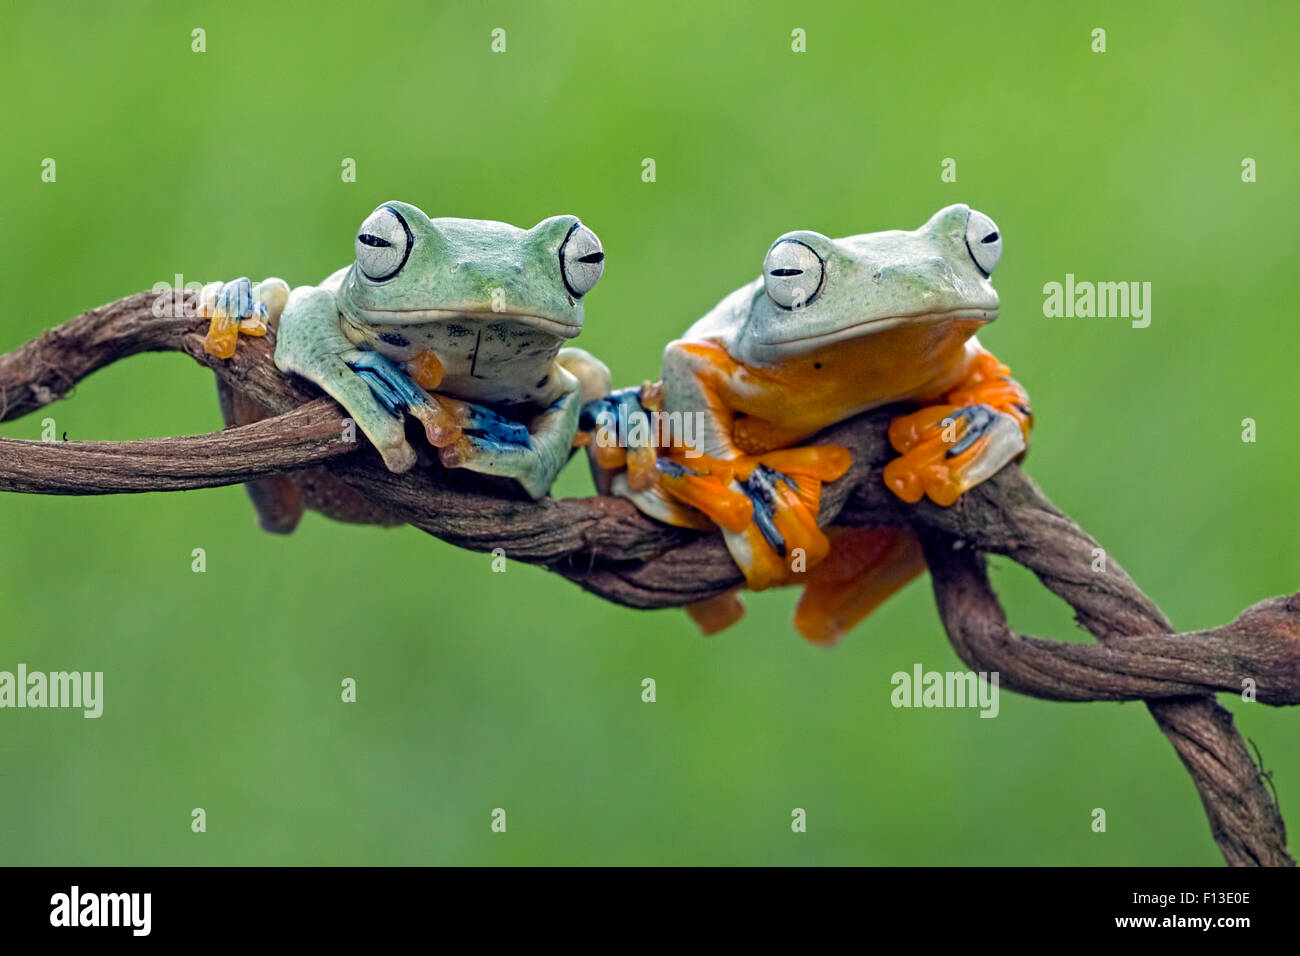 Two frogs on a branch - Stock Image